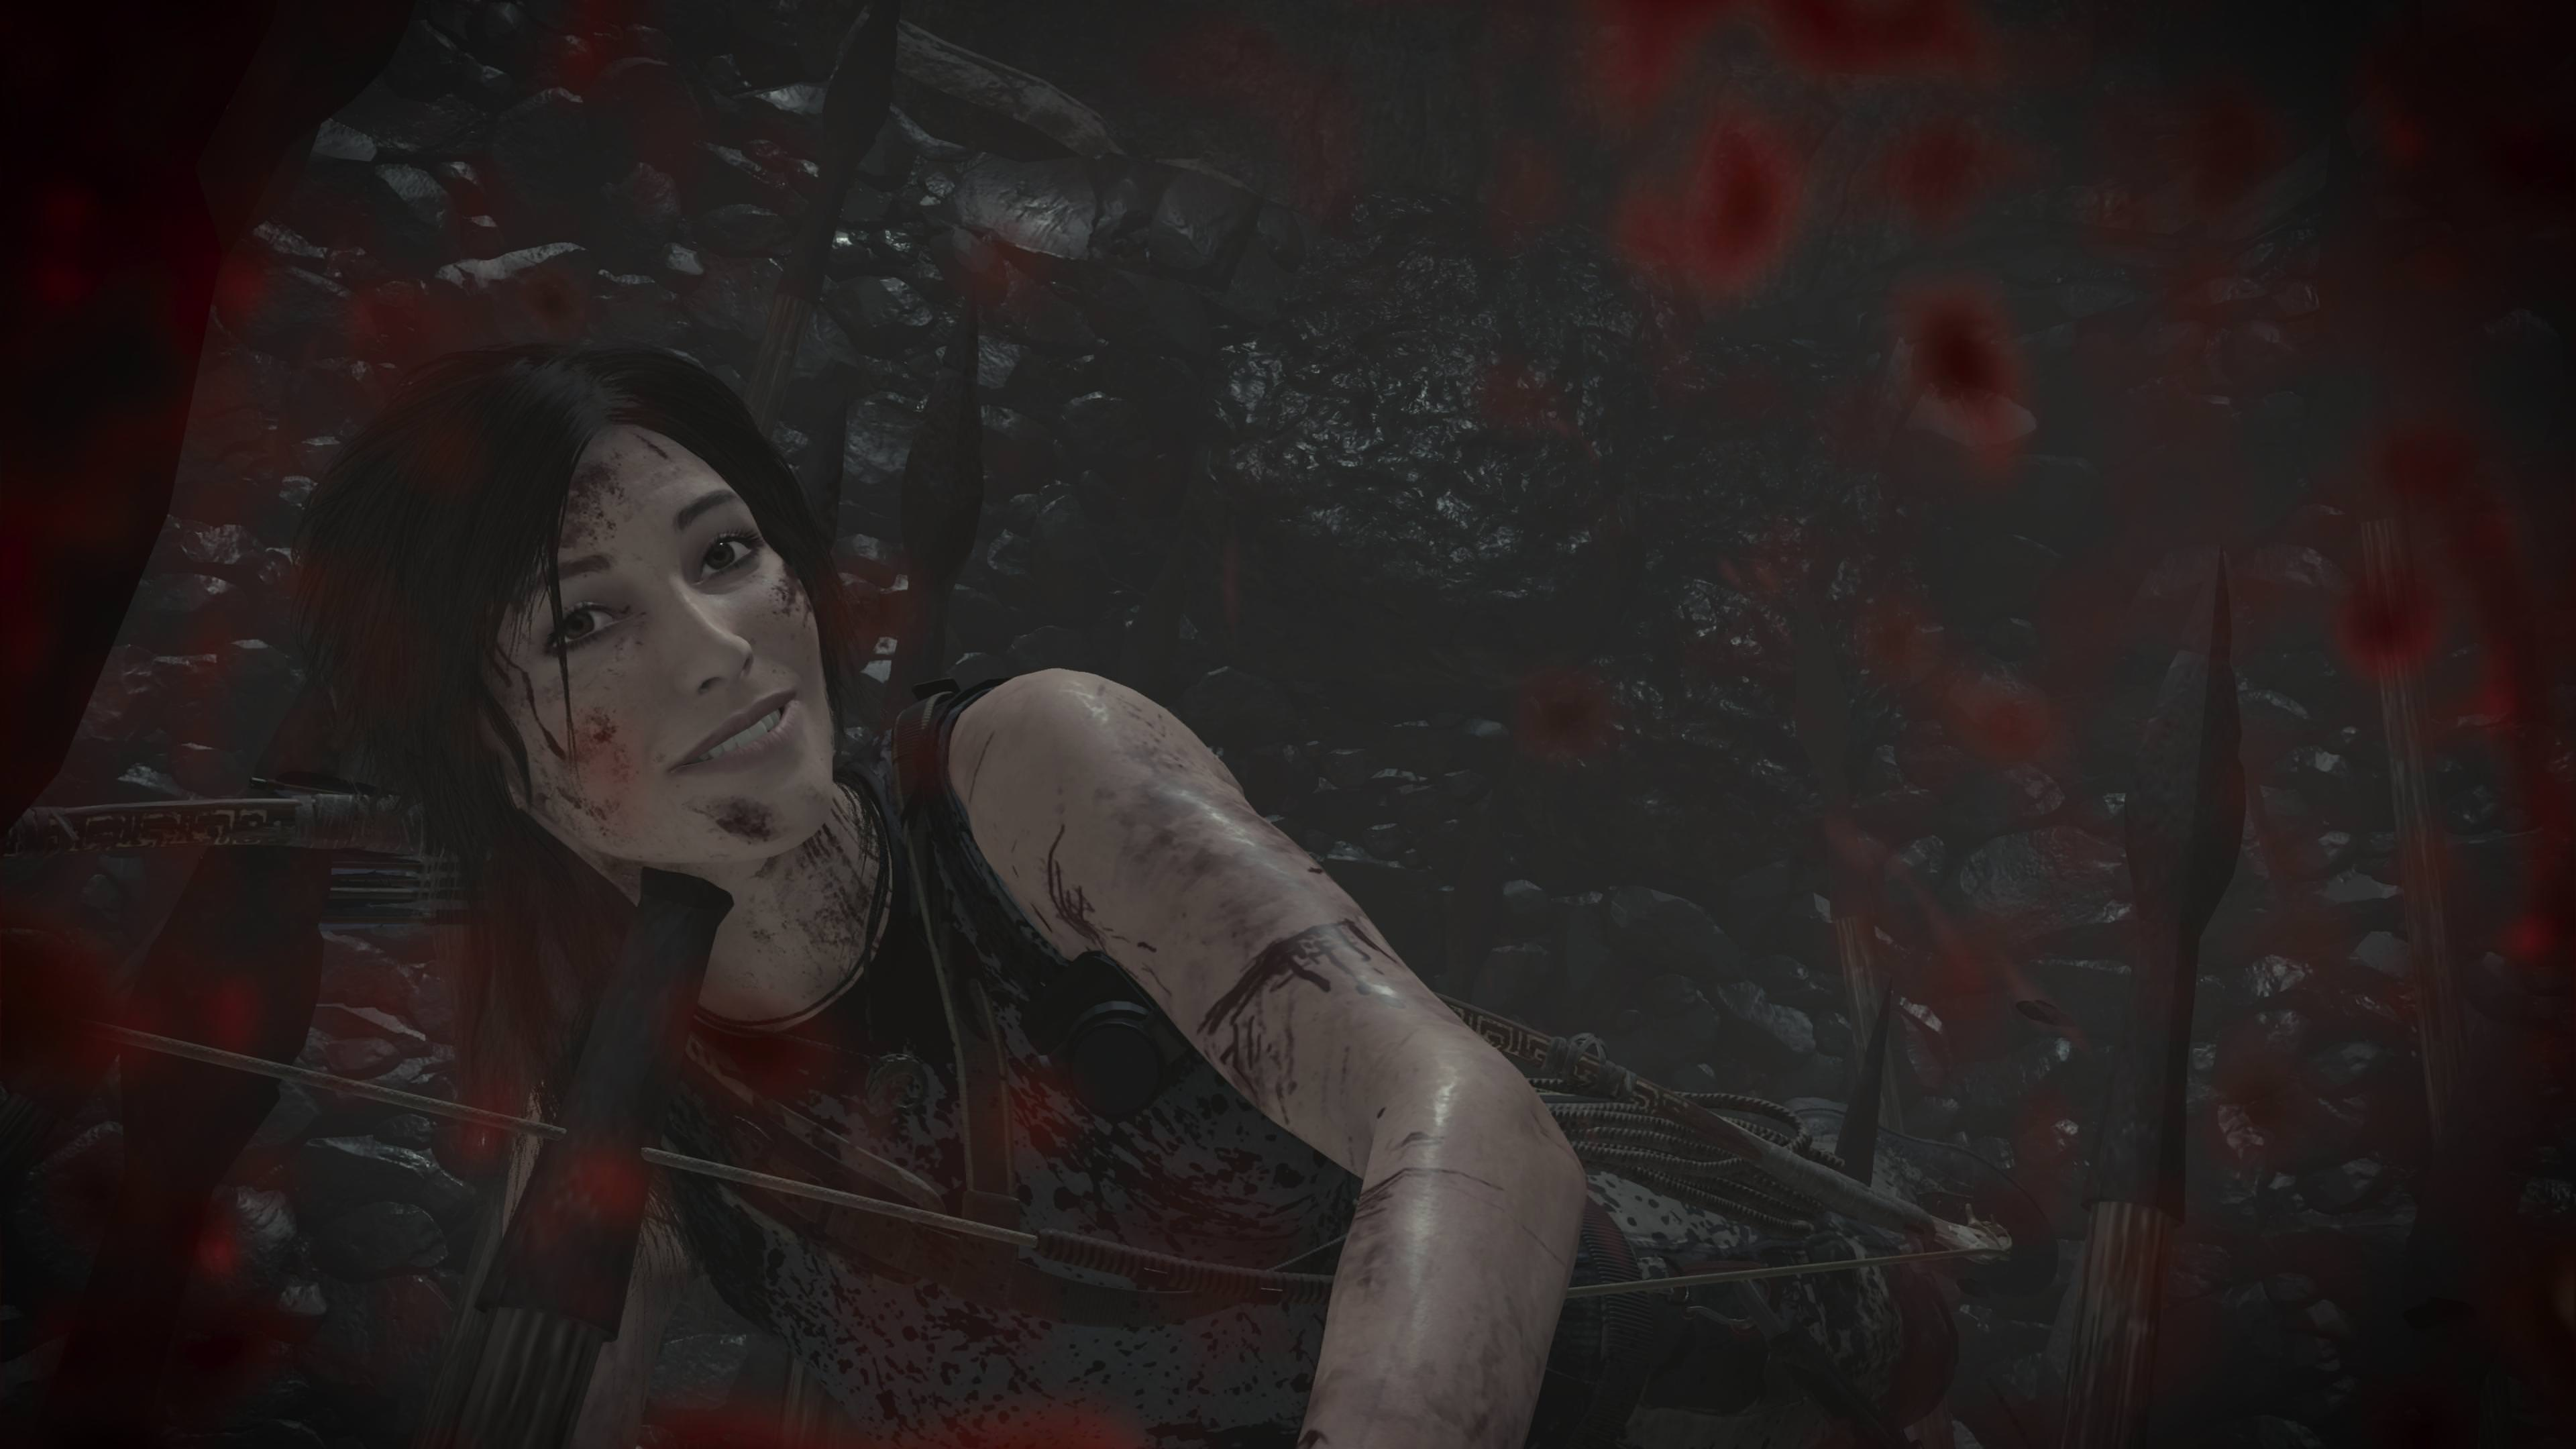 Die laughing during your free 'Shadow of the Tomb Raider' trial. Credit: Square Enix